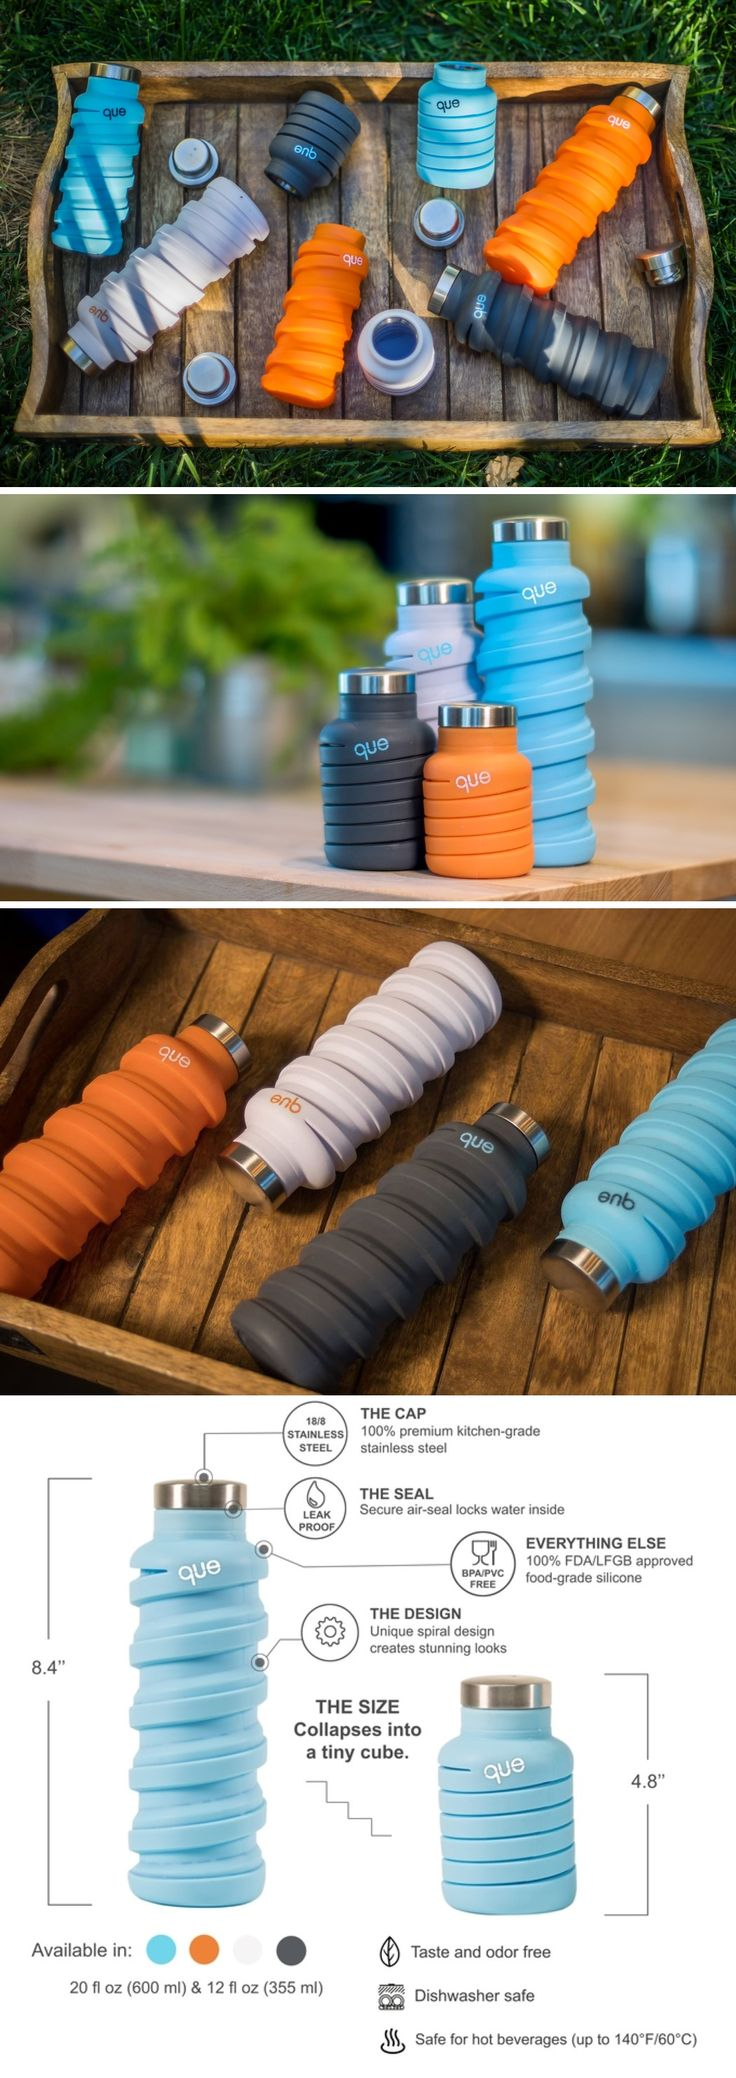 Water makes your skin glow, but water makes this bottle grow! The insanely convenient Que bottle is handy and fits right in your bag or backpack when you need it to be portable. However, a single pull turns it from a 8oz (250ml) bottle to a 20oz (600ml) bottle, allowing it to hold more than double its previous volume.